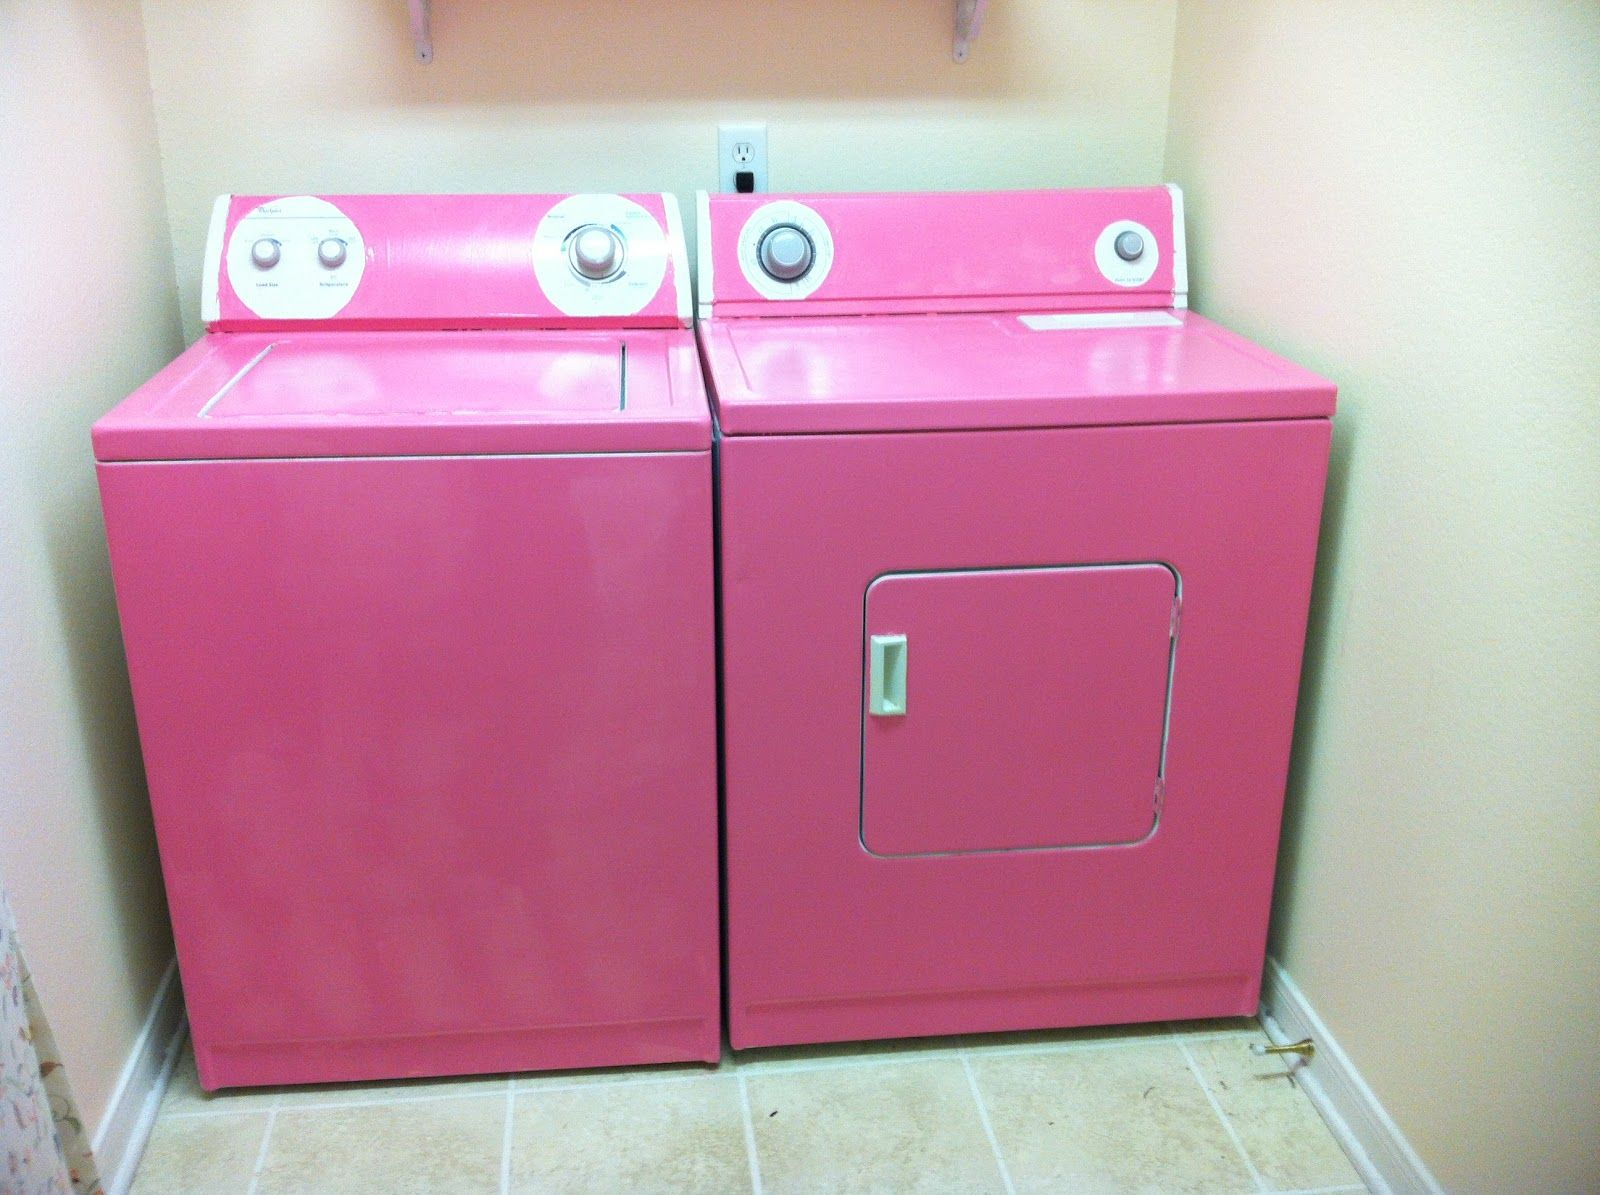 Ooh Idea For Plasti Dip But Definitely Not Pink Pink Polka Dots Pink Washing Washing Machine